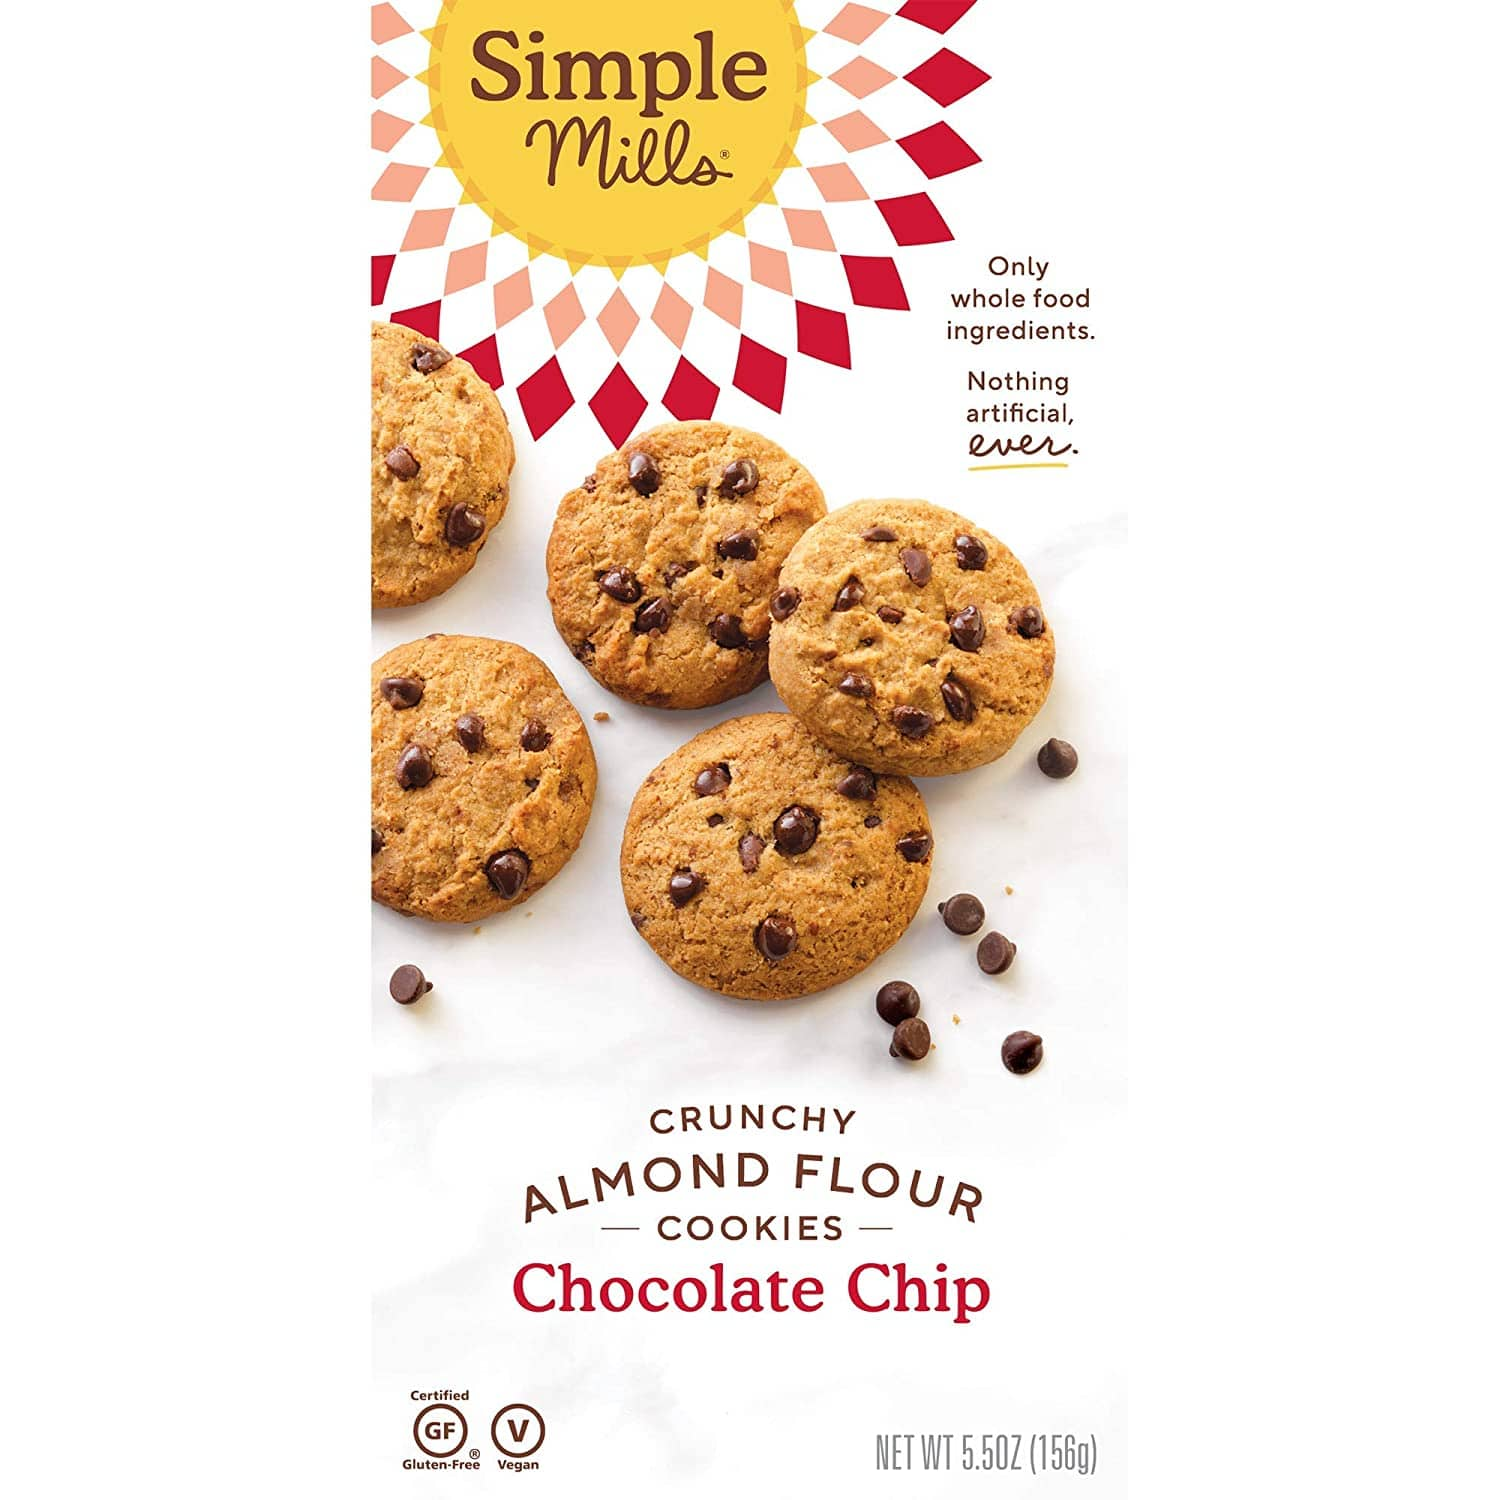 Simple Mills Gluten Free: 6-Ct Almond Flour Chocolate Chip Cookies $14.05, Almond Flour Cookie Dough Baking Mix $4, More + Free Shipping w/ Prime